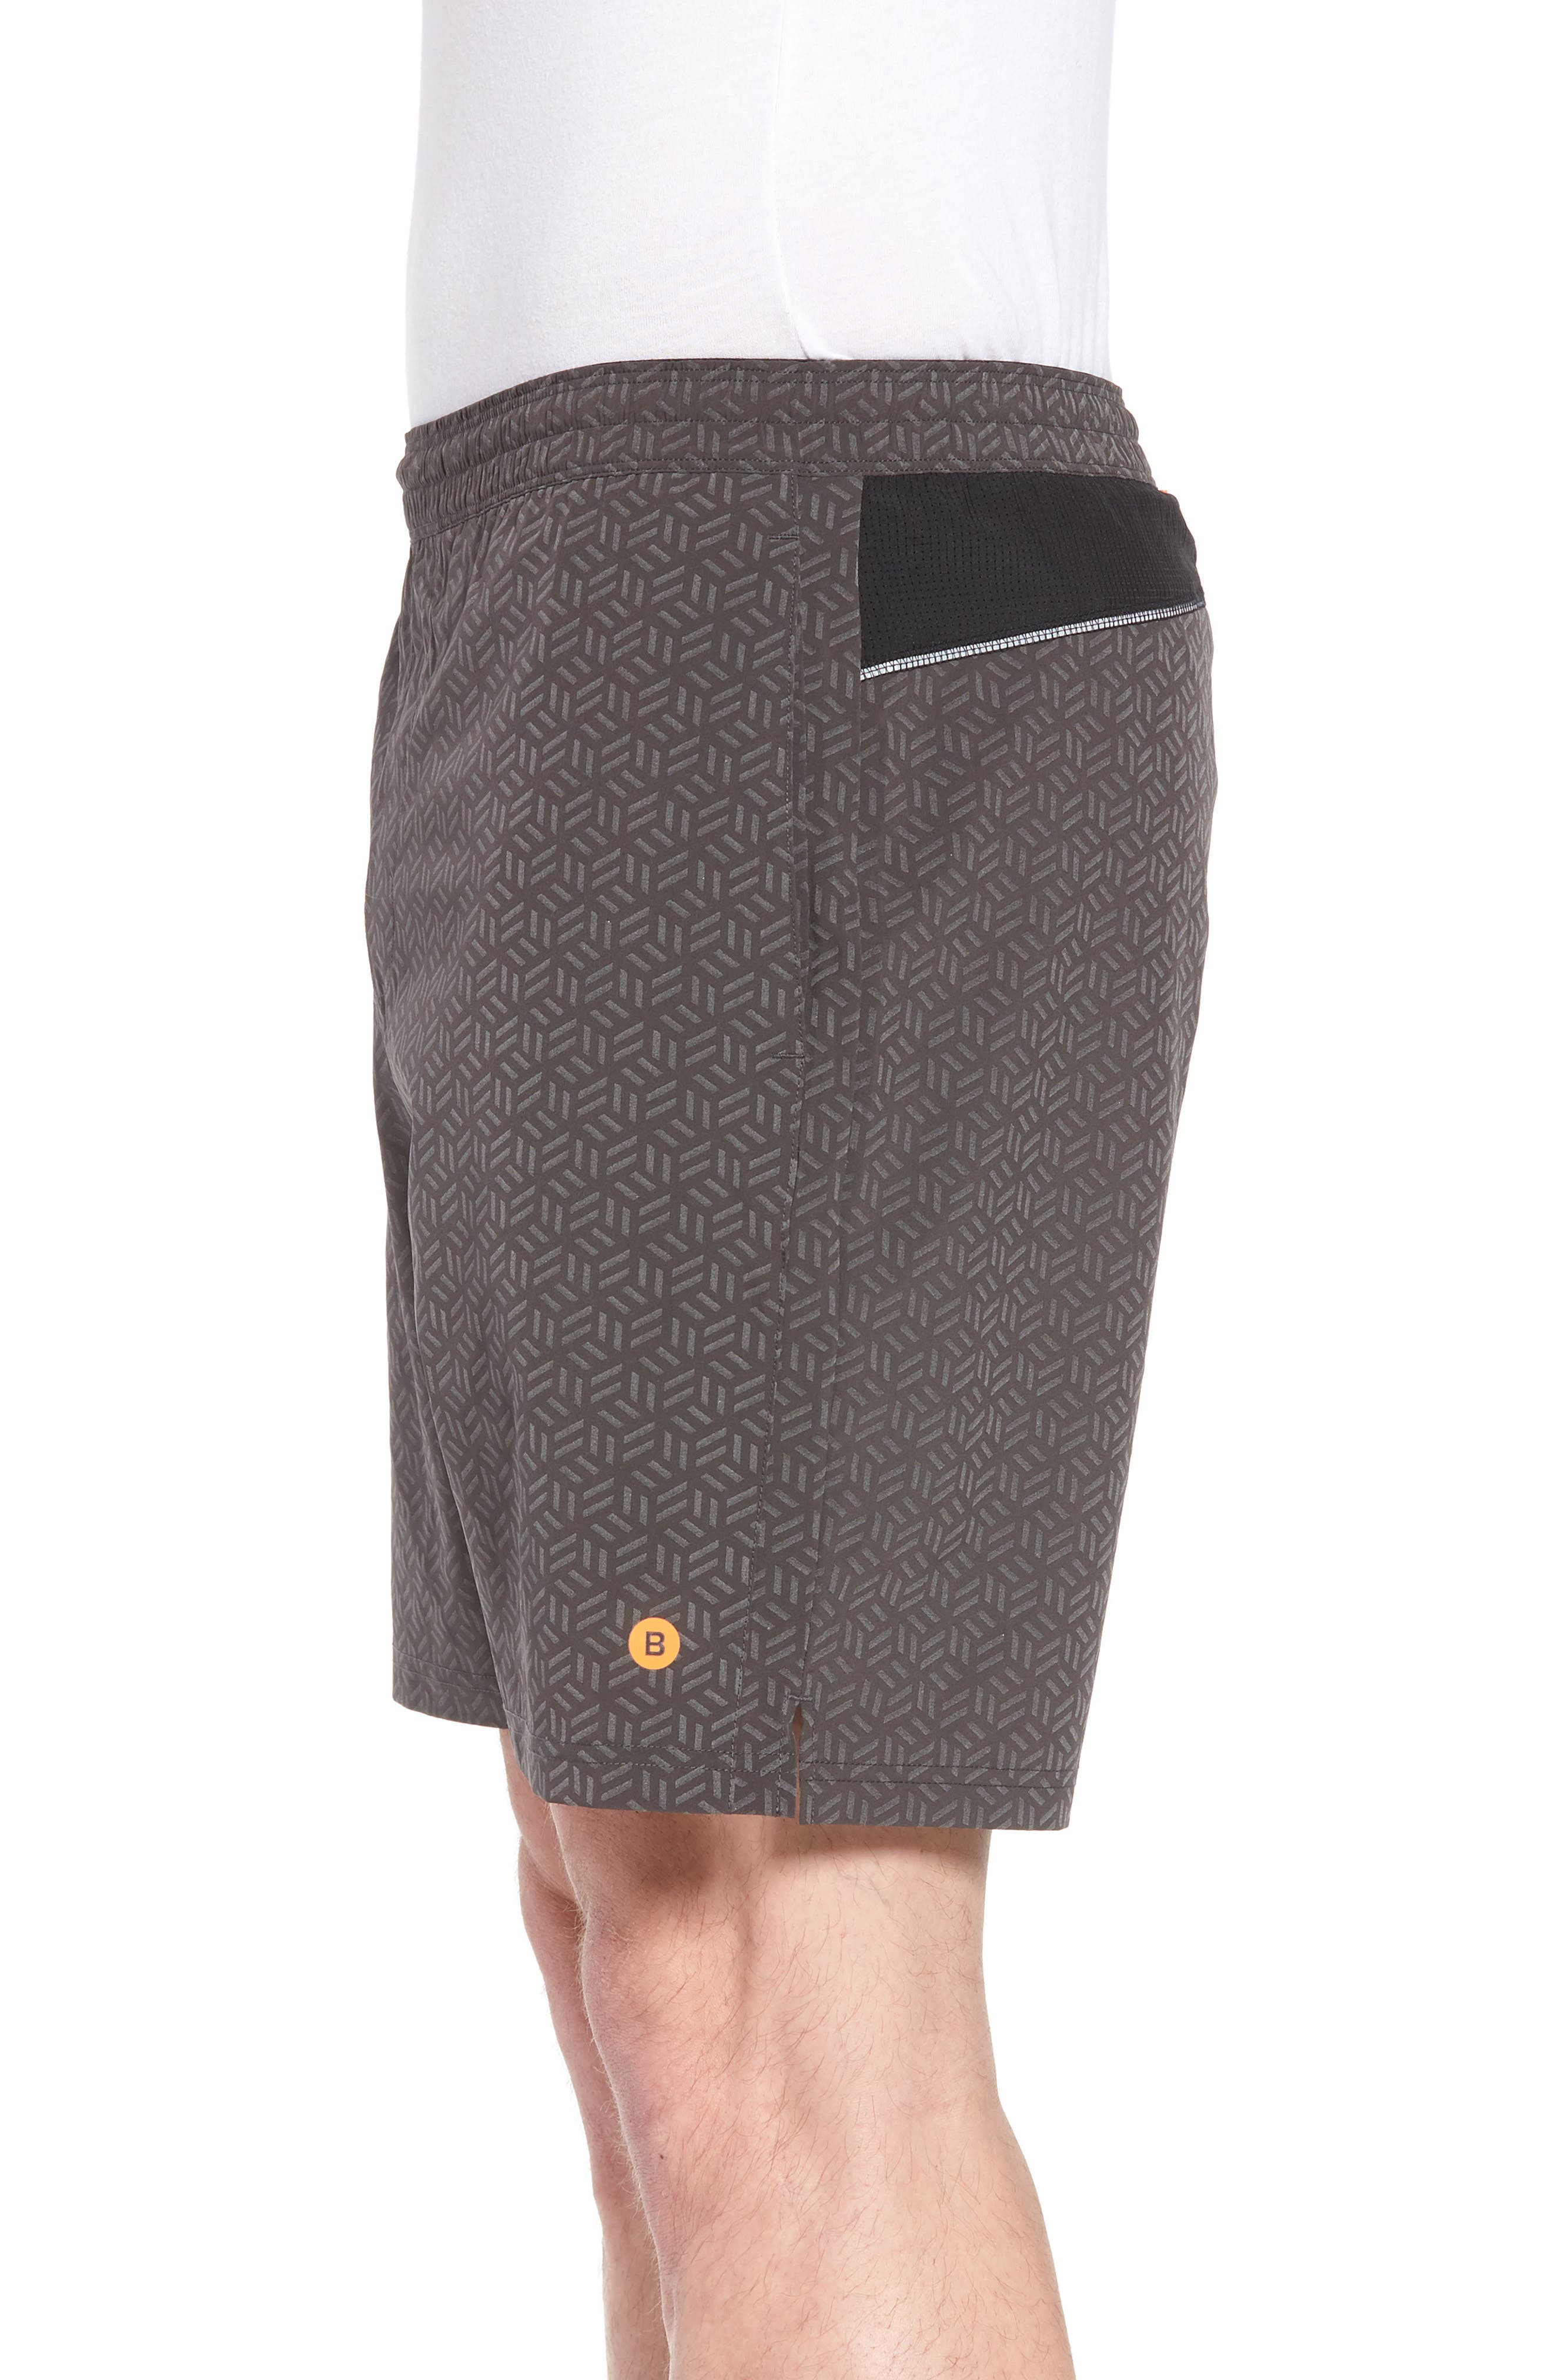 Stretch Shorts,                             Alternate thumbnail 3, color,                             Reflective Cube Geo